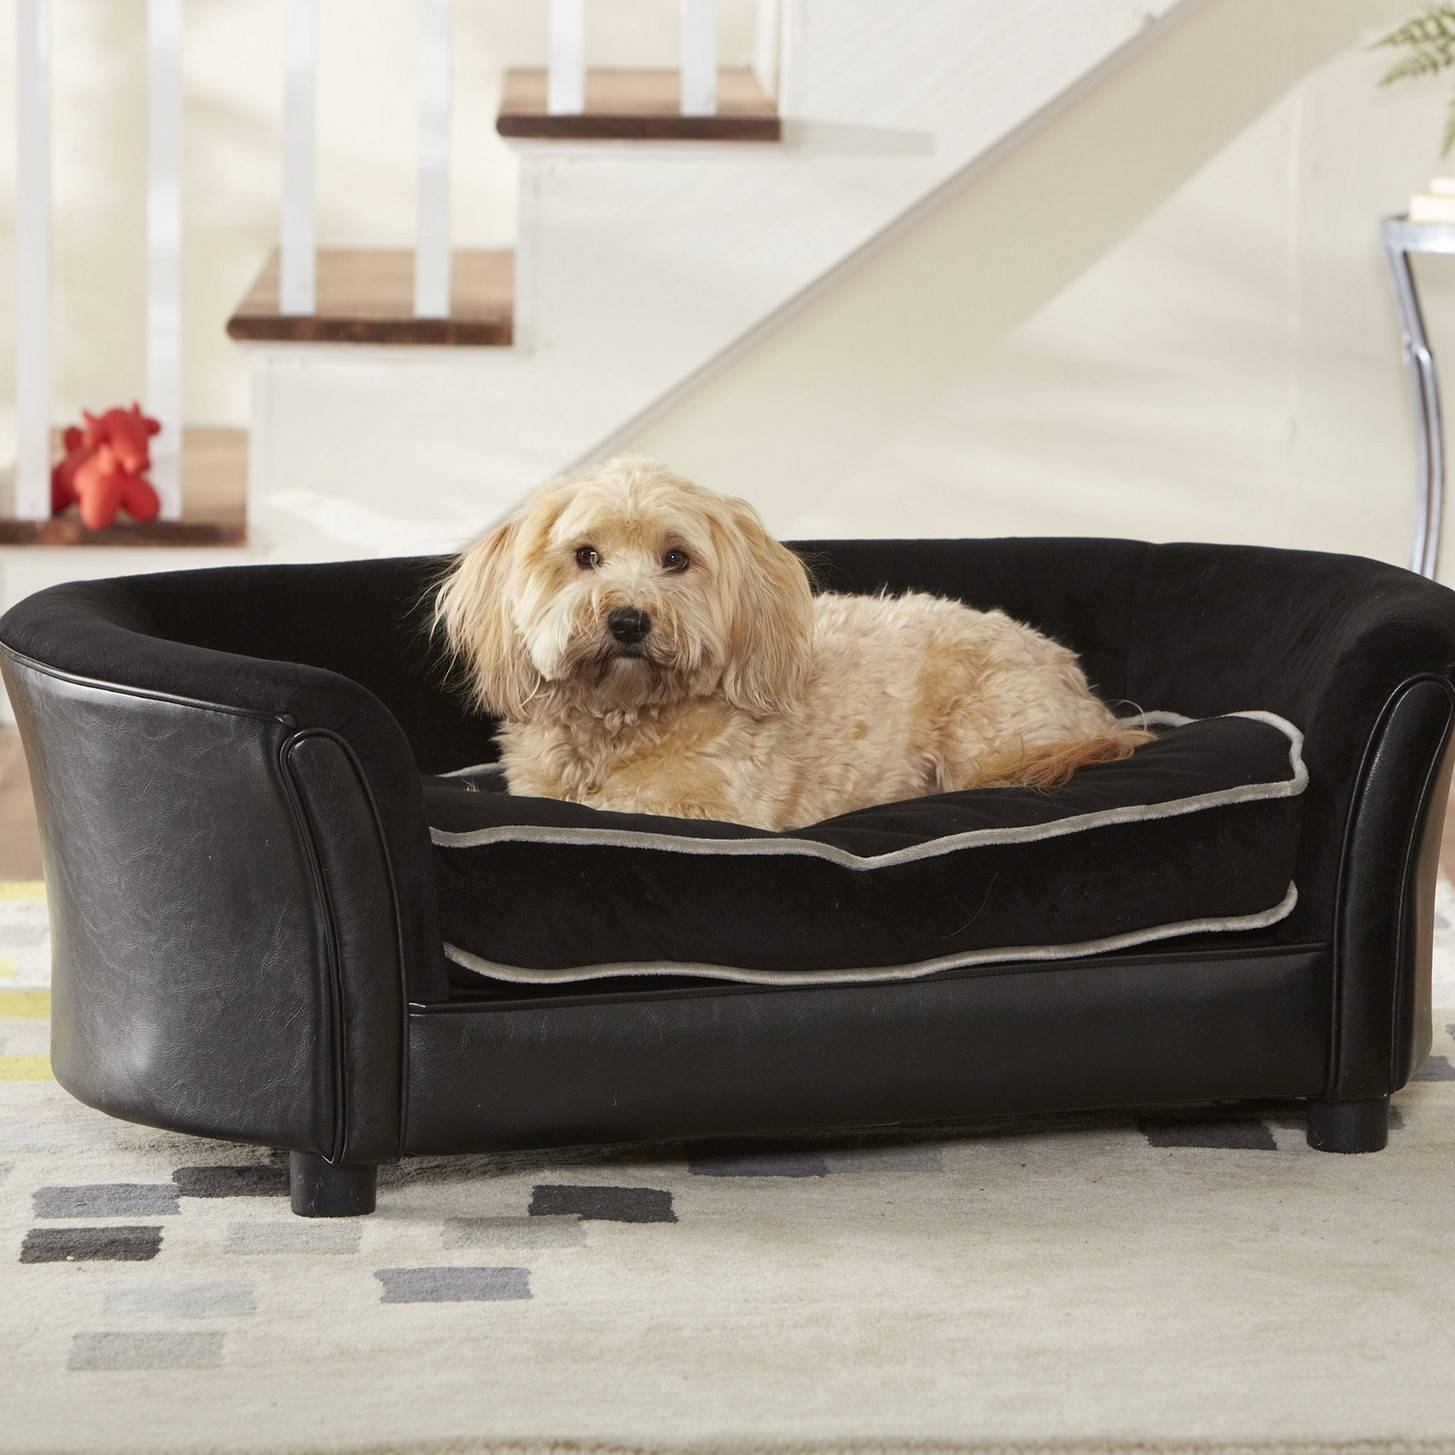 Sofas Center : Petaenchanted Home Snuggle Aspen For Dogs Fresh with regard to Sofas for Dogs (Image 25 of 30)